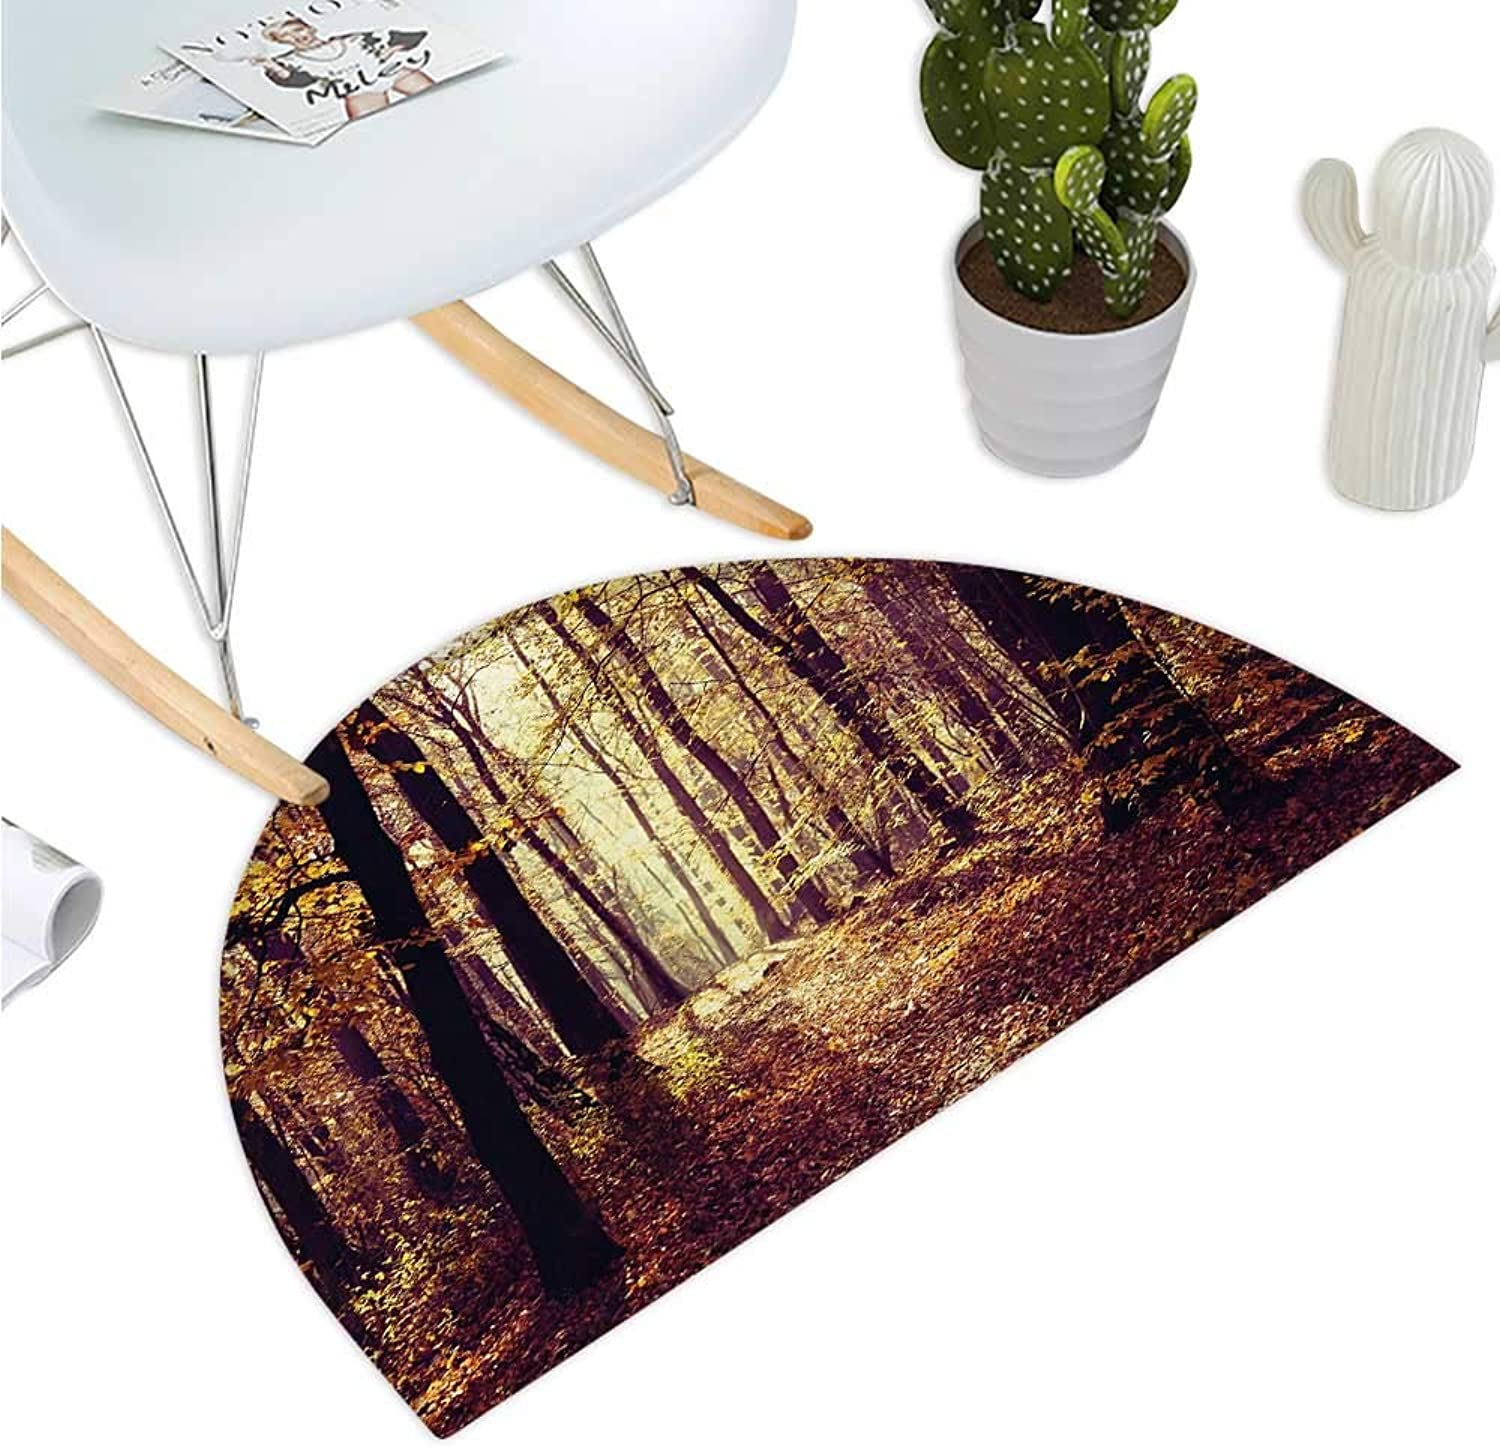 Forest Semicircle Doormat Mysterious Atmosphere Misty Woods Trees Nature Landscape Entry Door Mat H 35.4  xD 53.1  Dark orange Dark Brown Pale Yellow